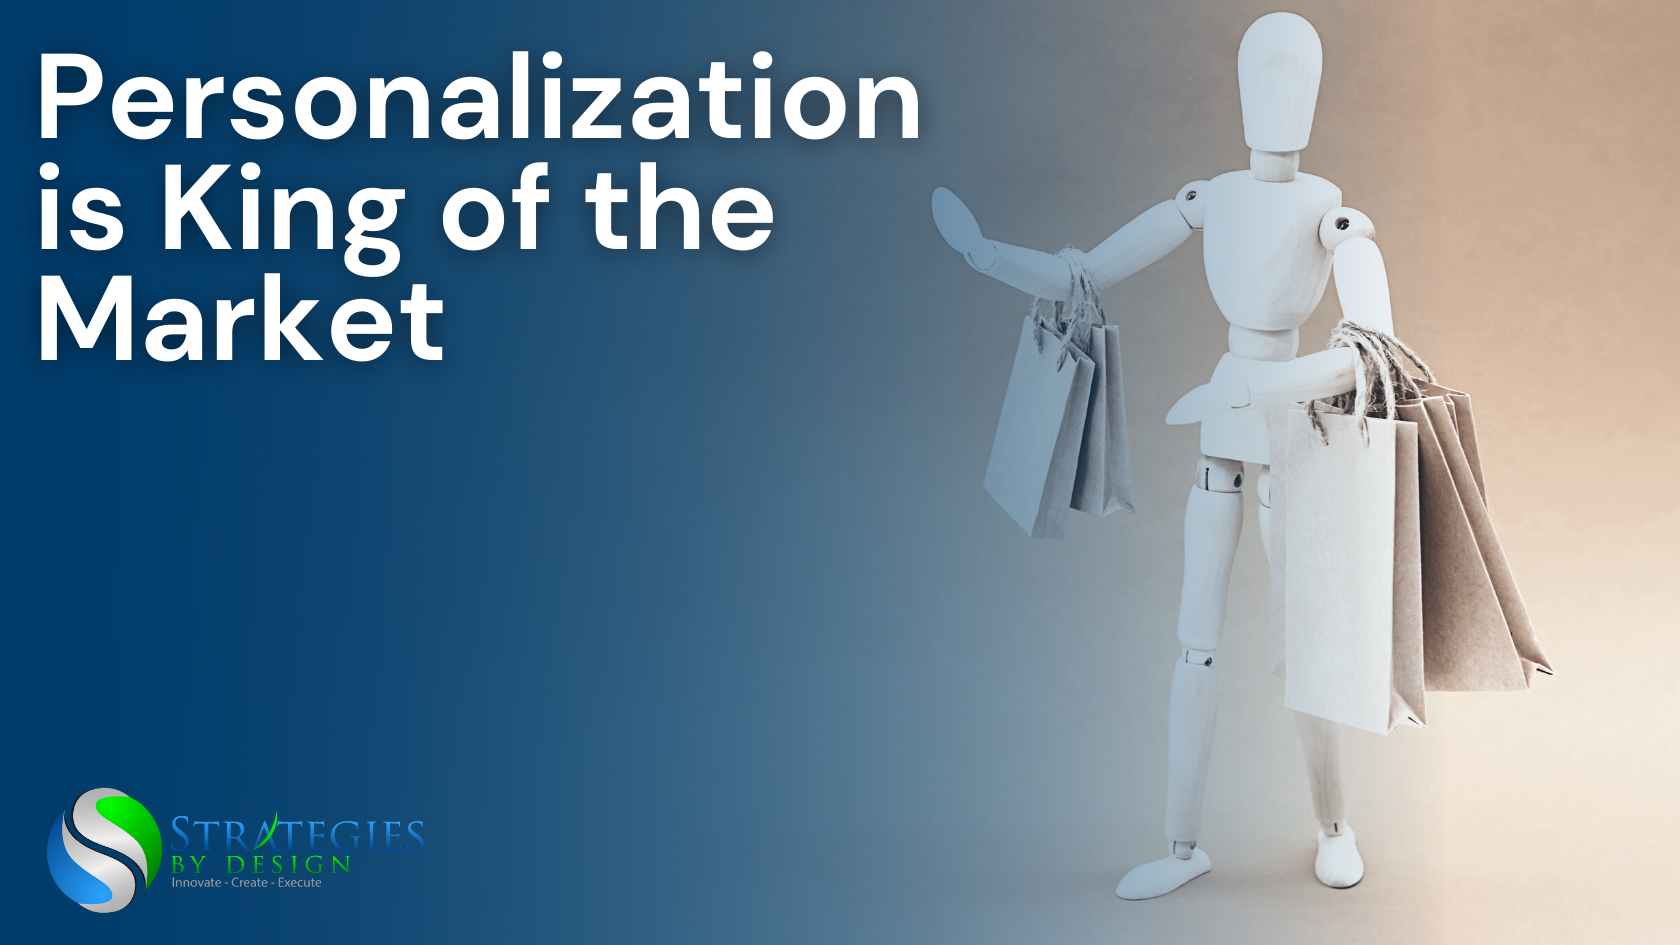 Personalization is King of the Market - Strategies by Design